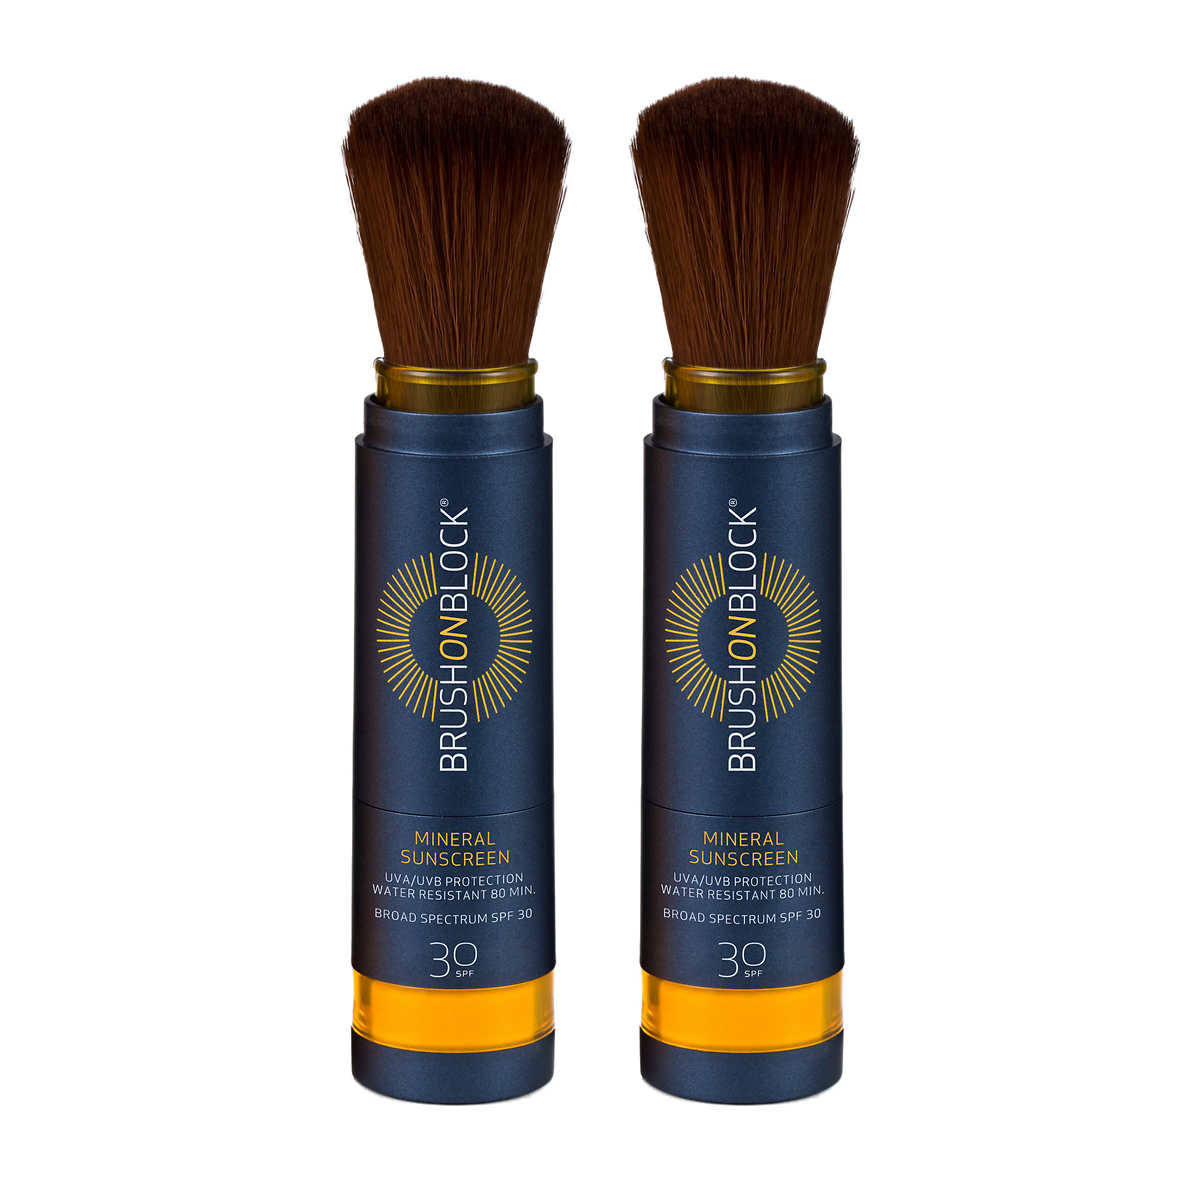 Sunforgettable Brush-On Sunscreen by colorescience #18